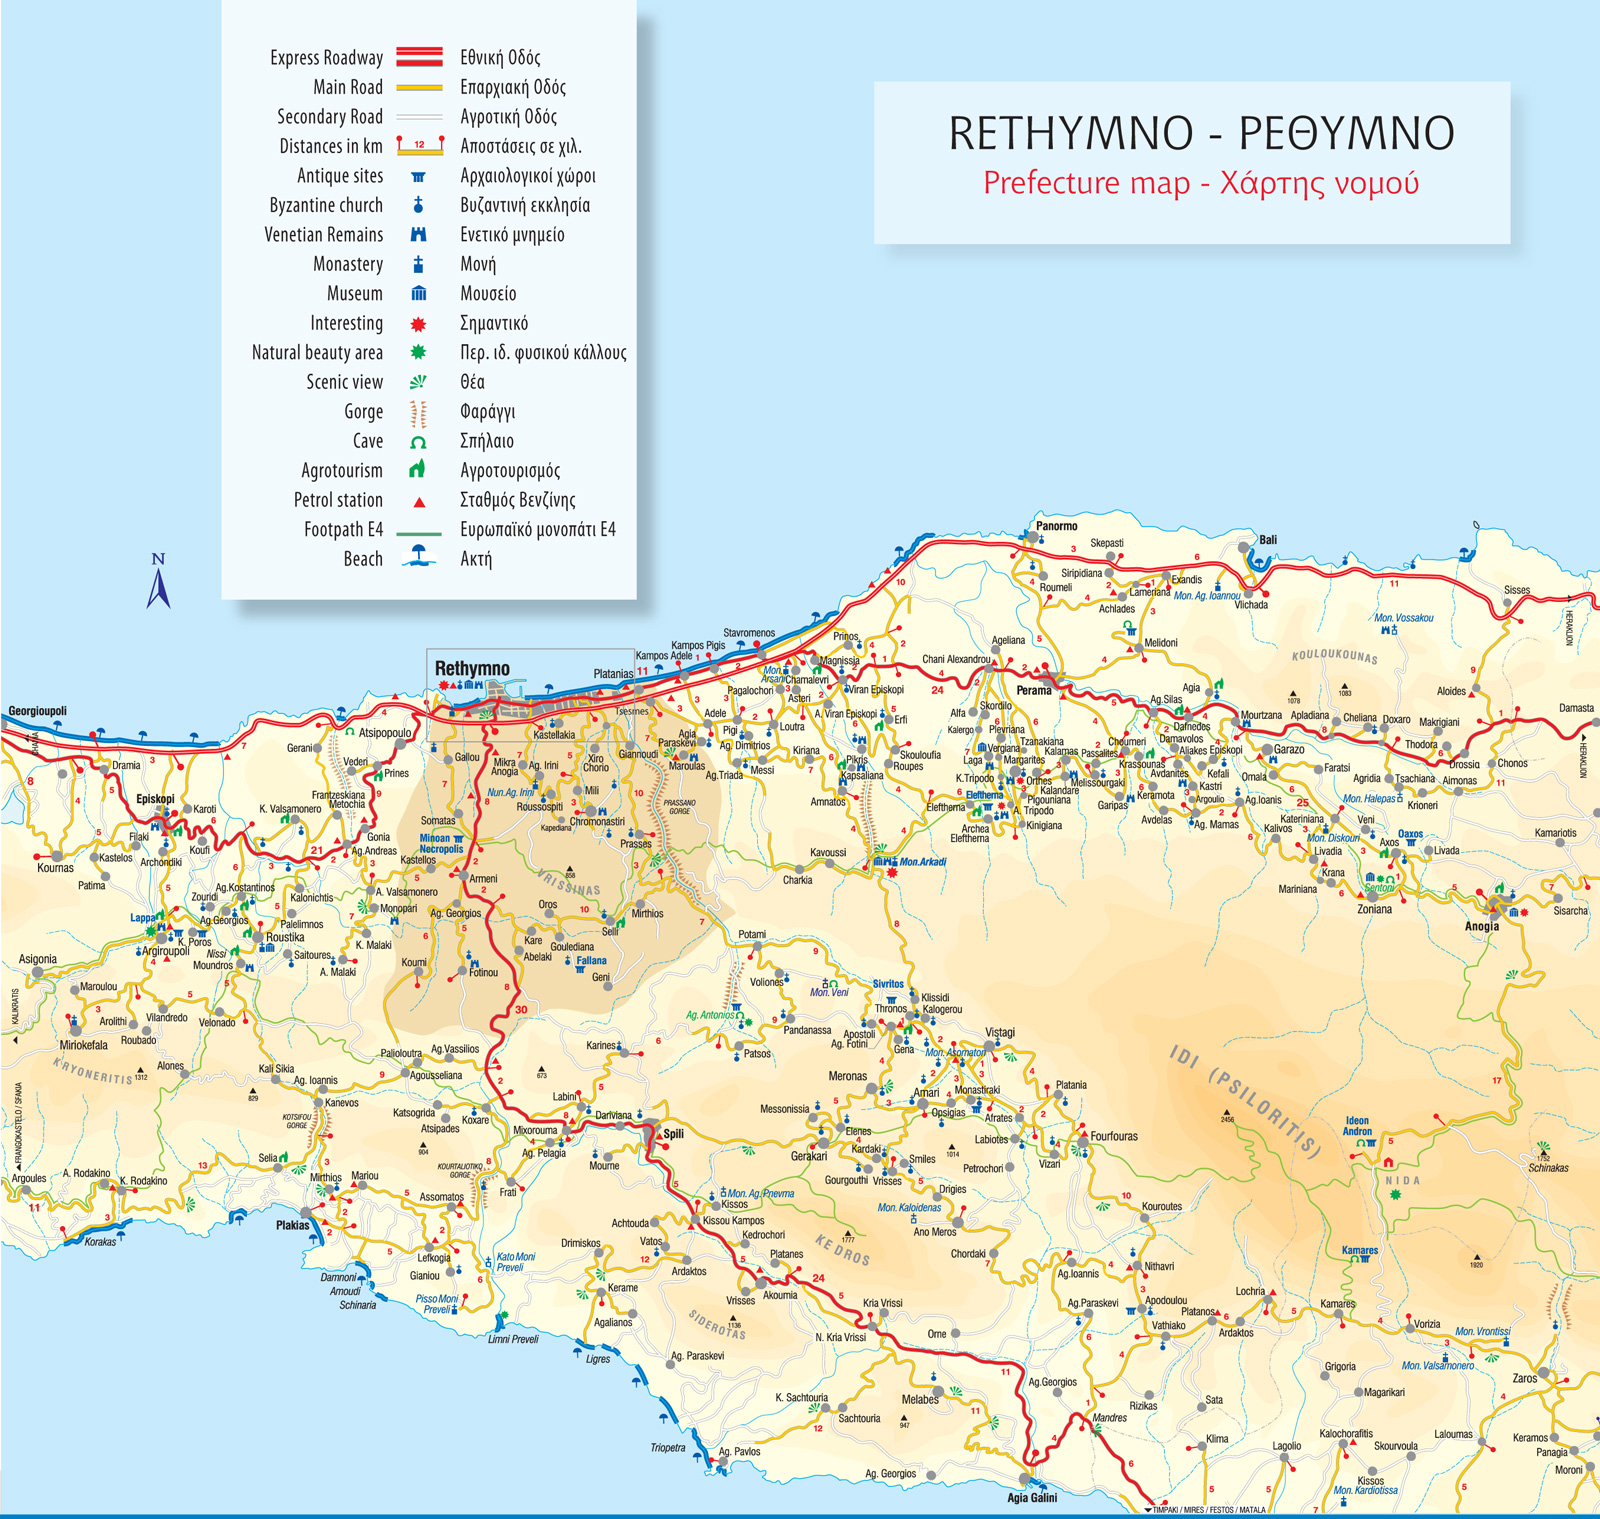 Rethymno Perfecture Map